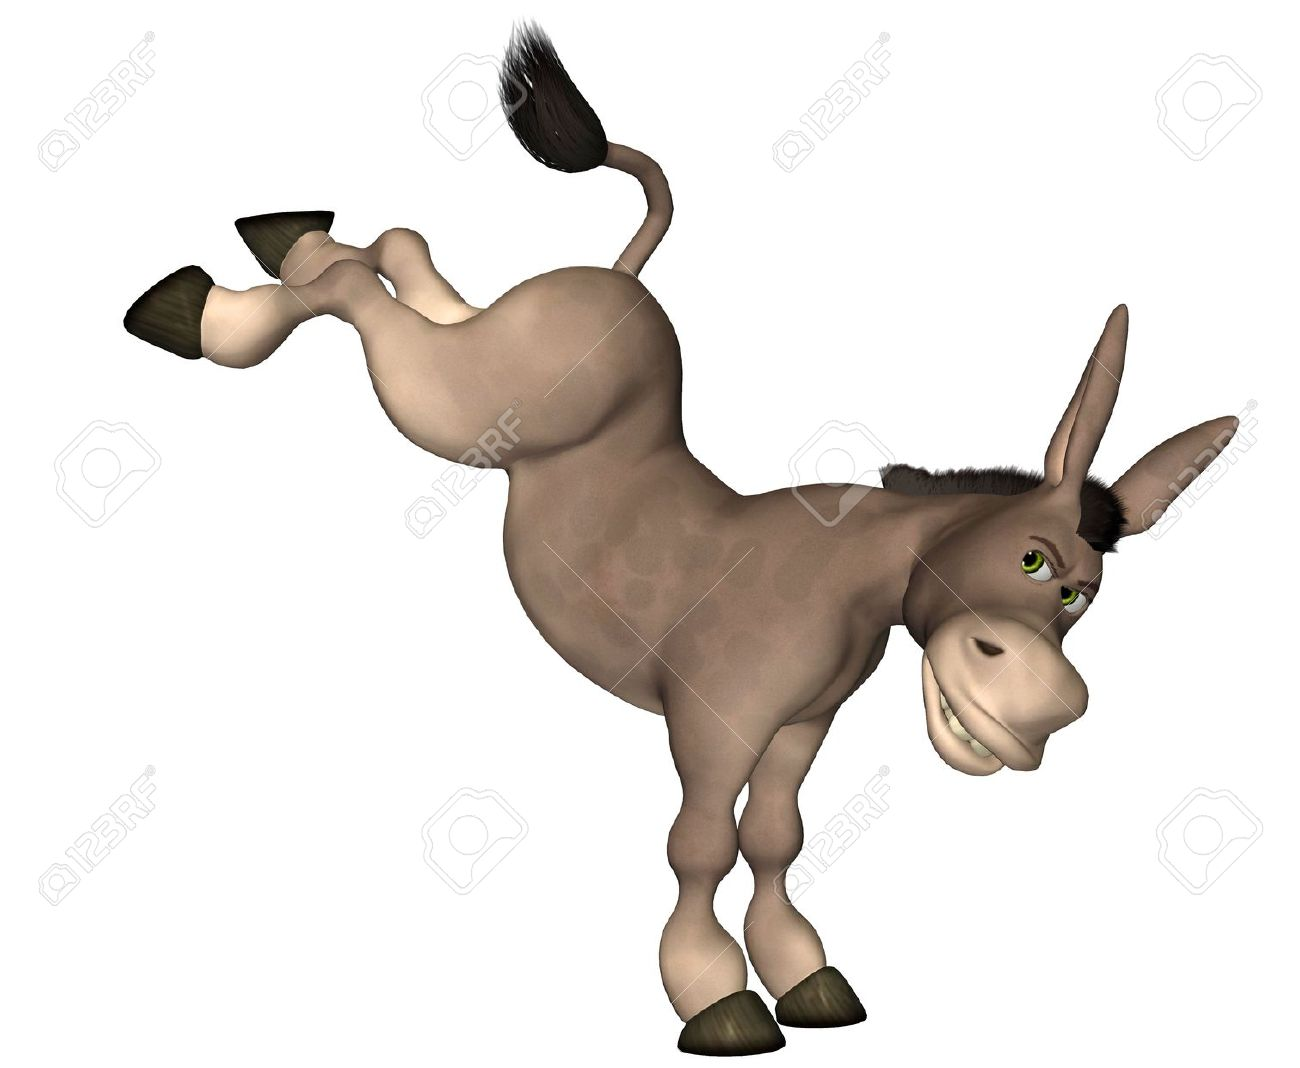 1300x1068 Democratic Donkey Images Amp Stock Pictures. Royalty Free Democratic